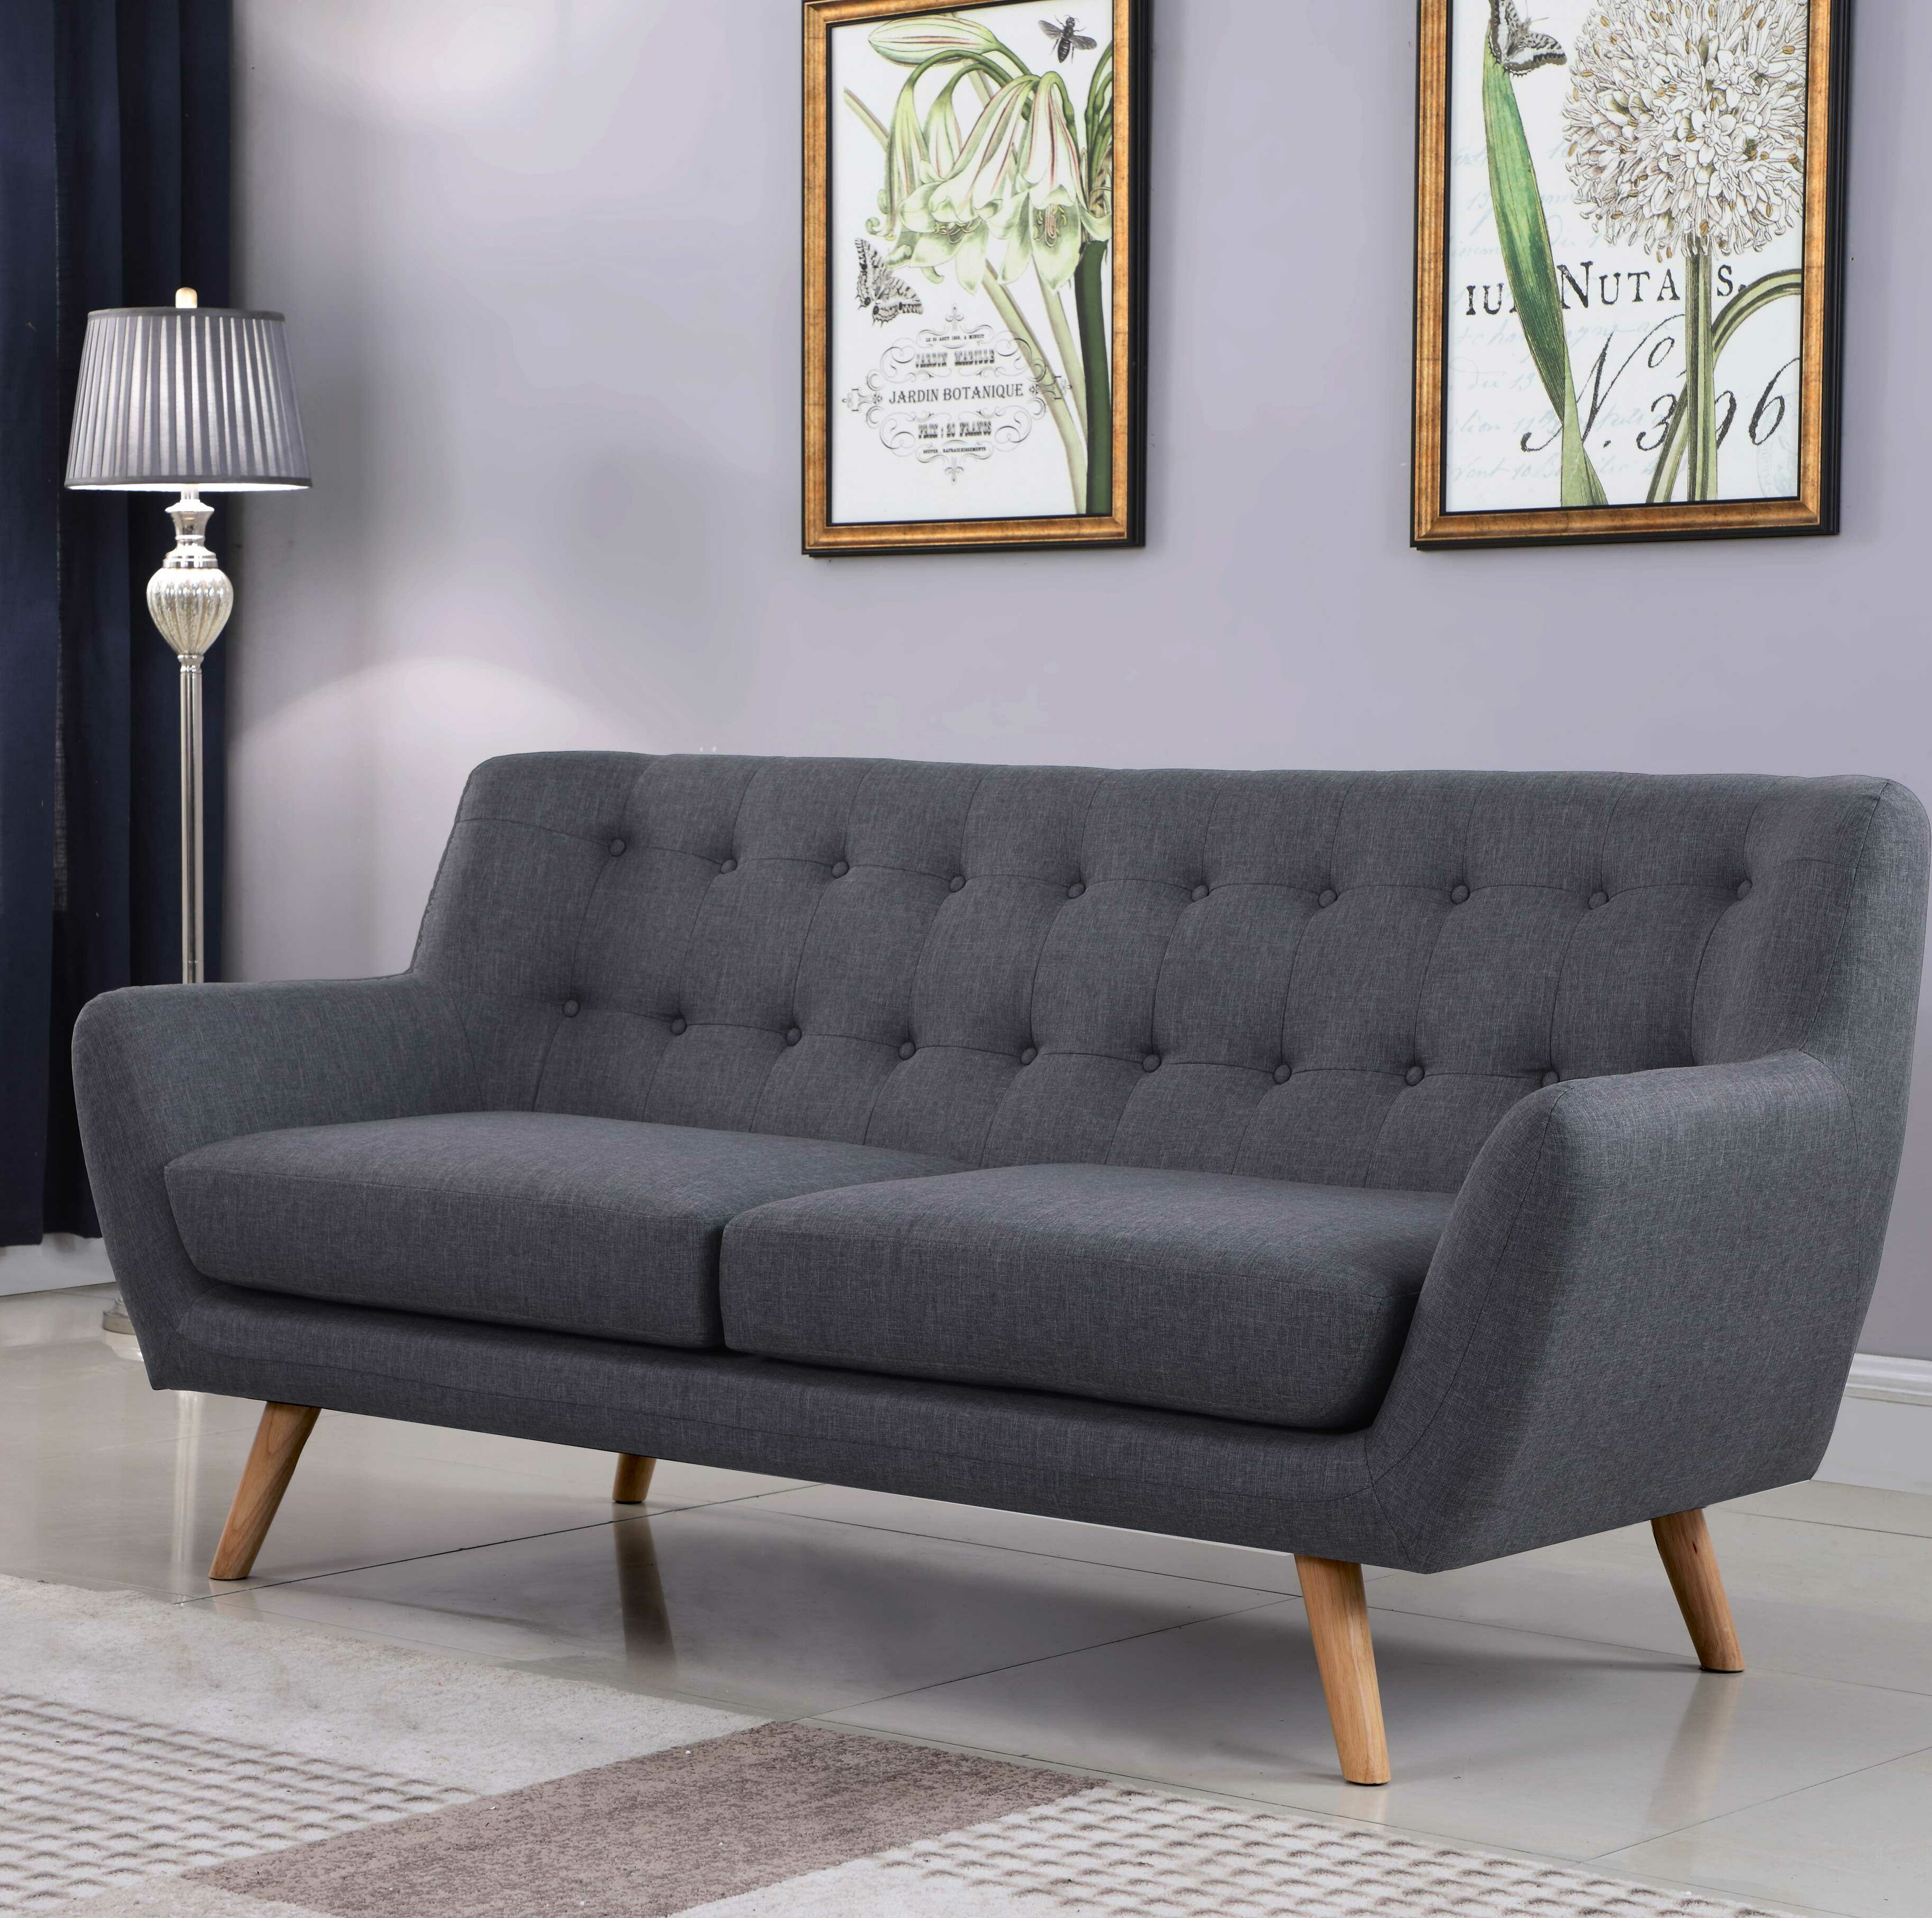 George Oliver Zaragoza Mid Century Sofa U0026 Reviews | Wayfair